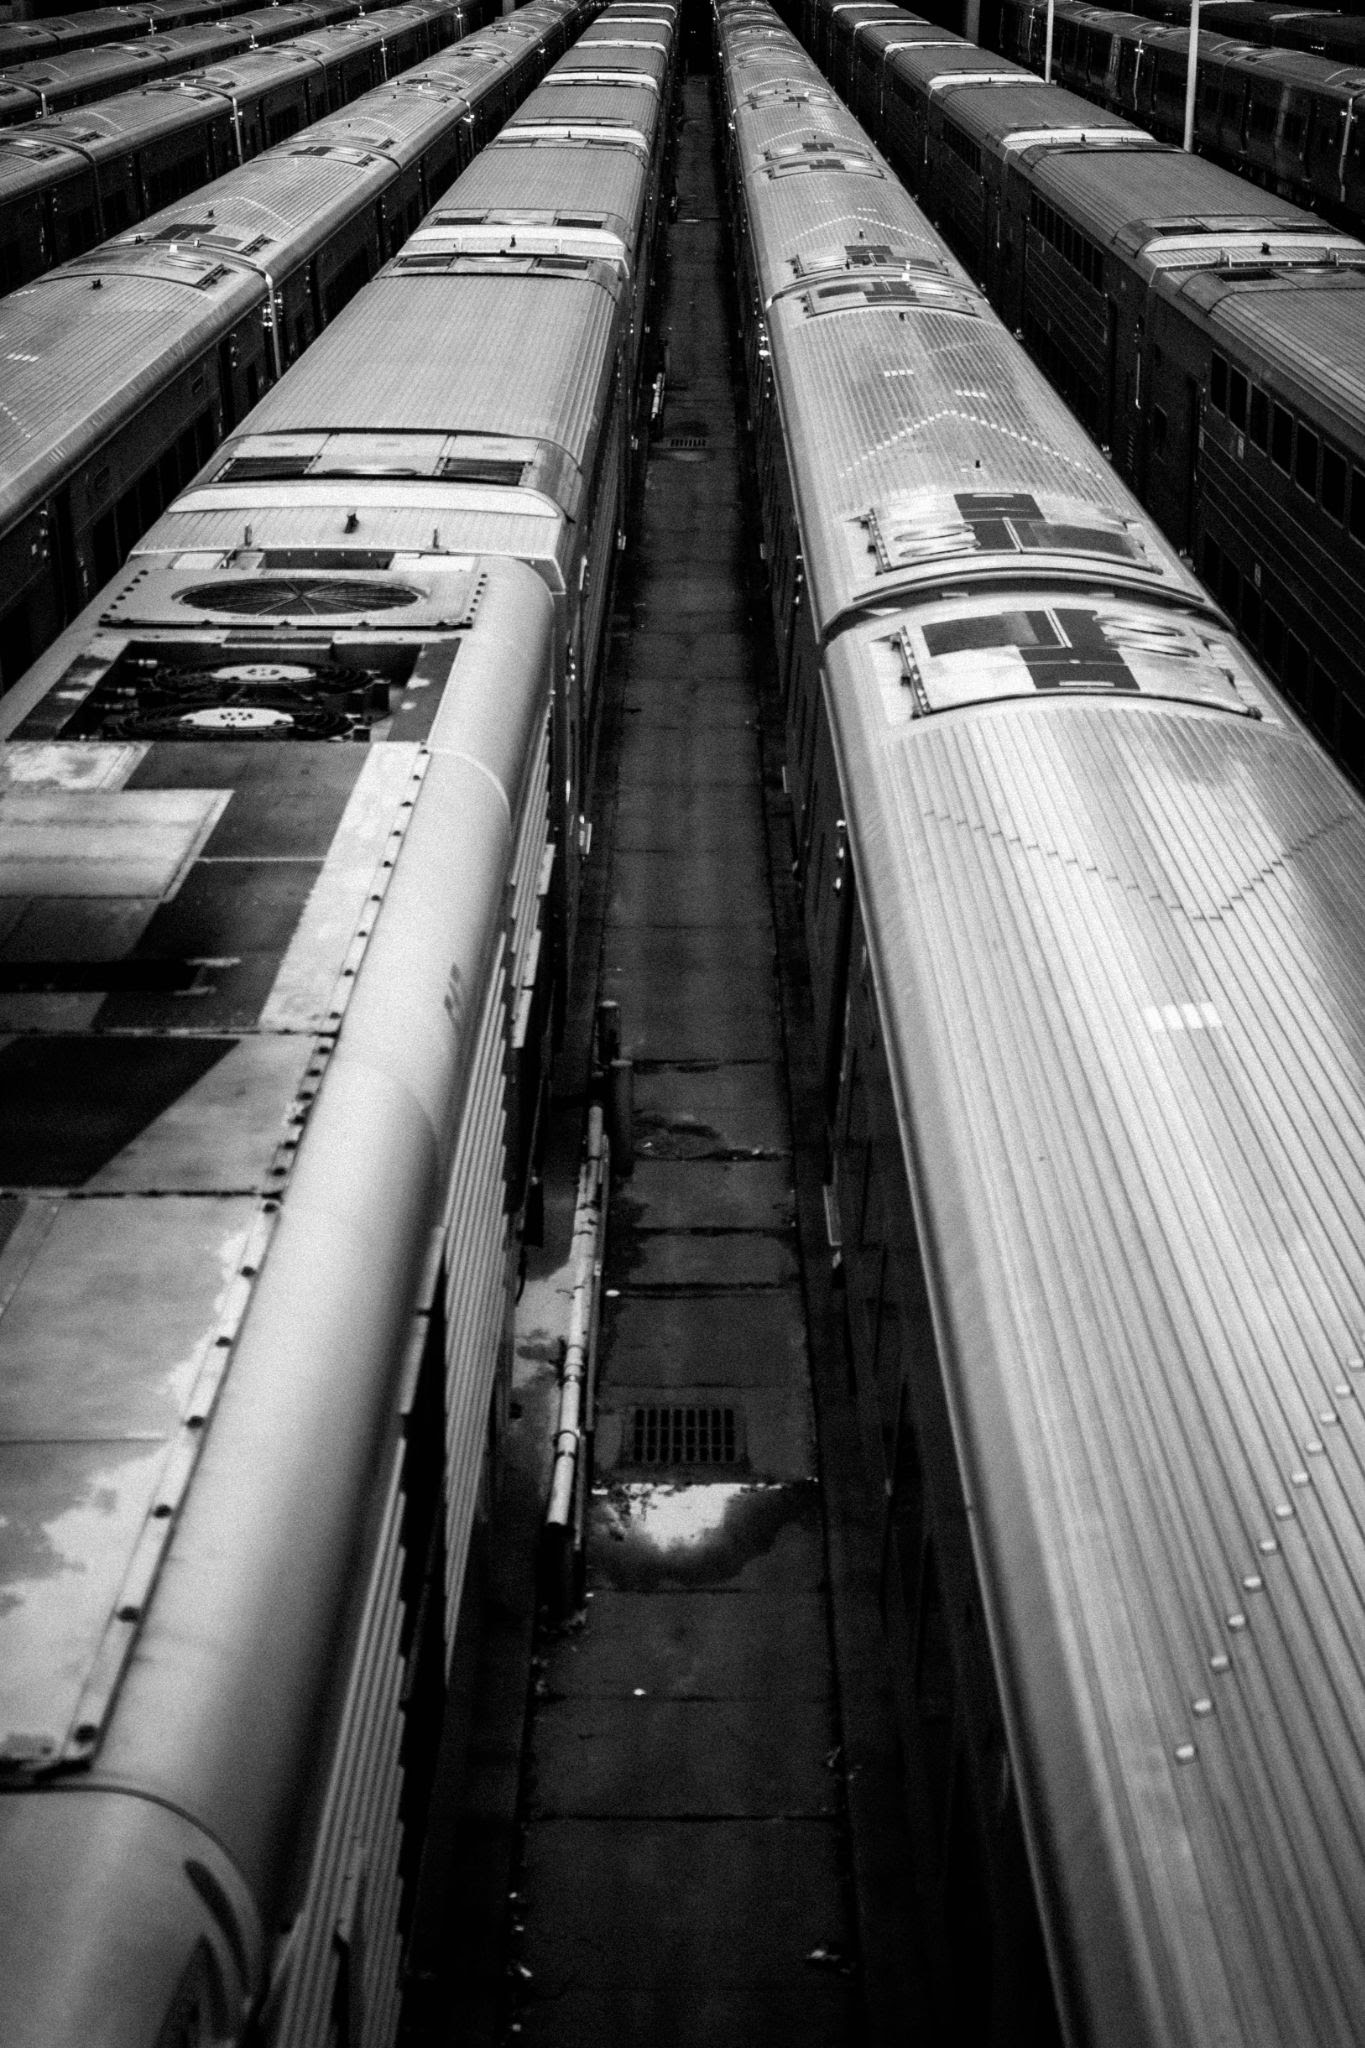 roofs of train